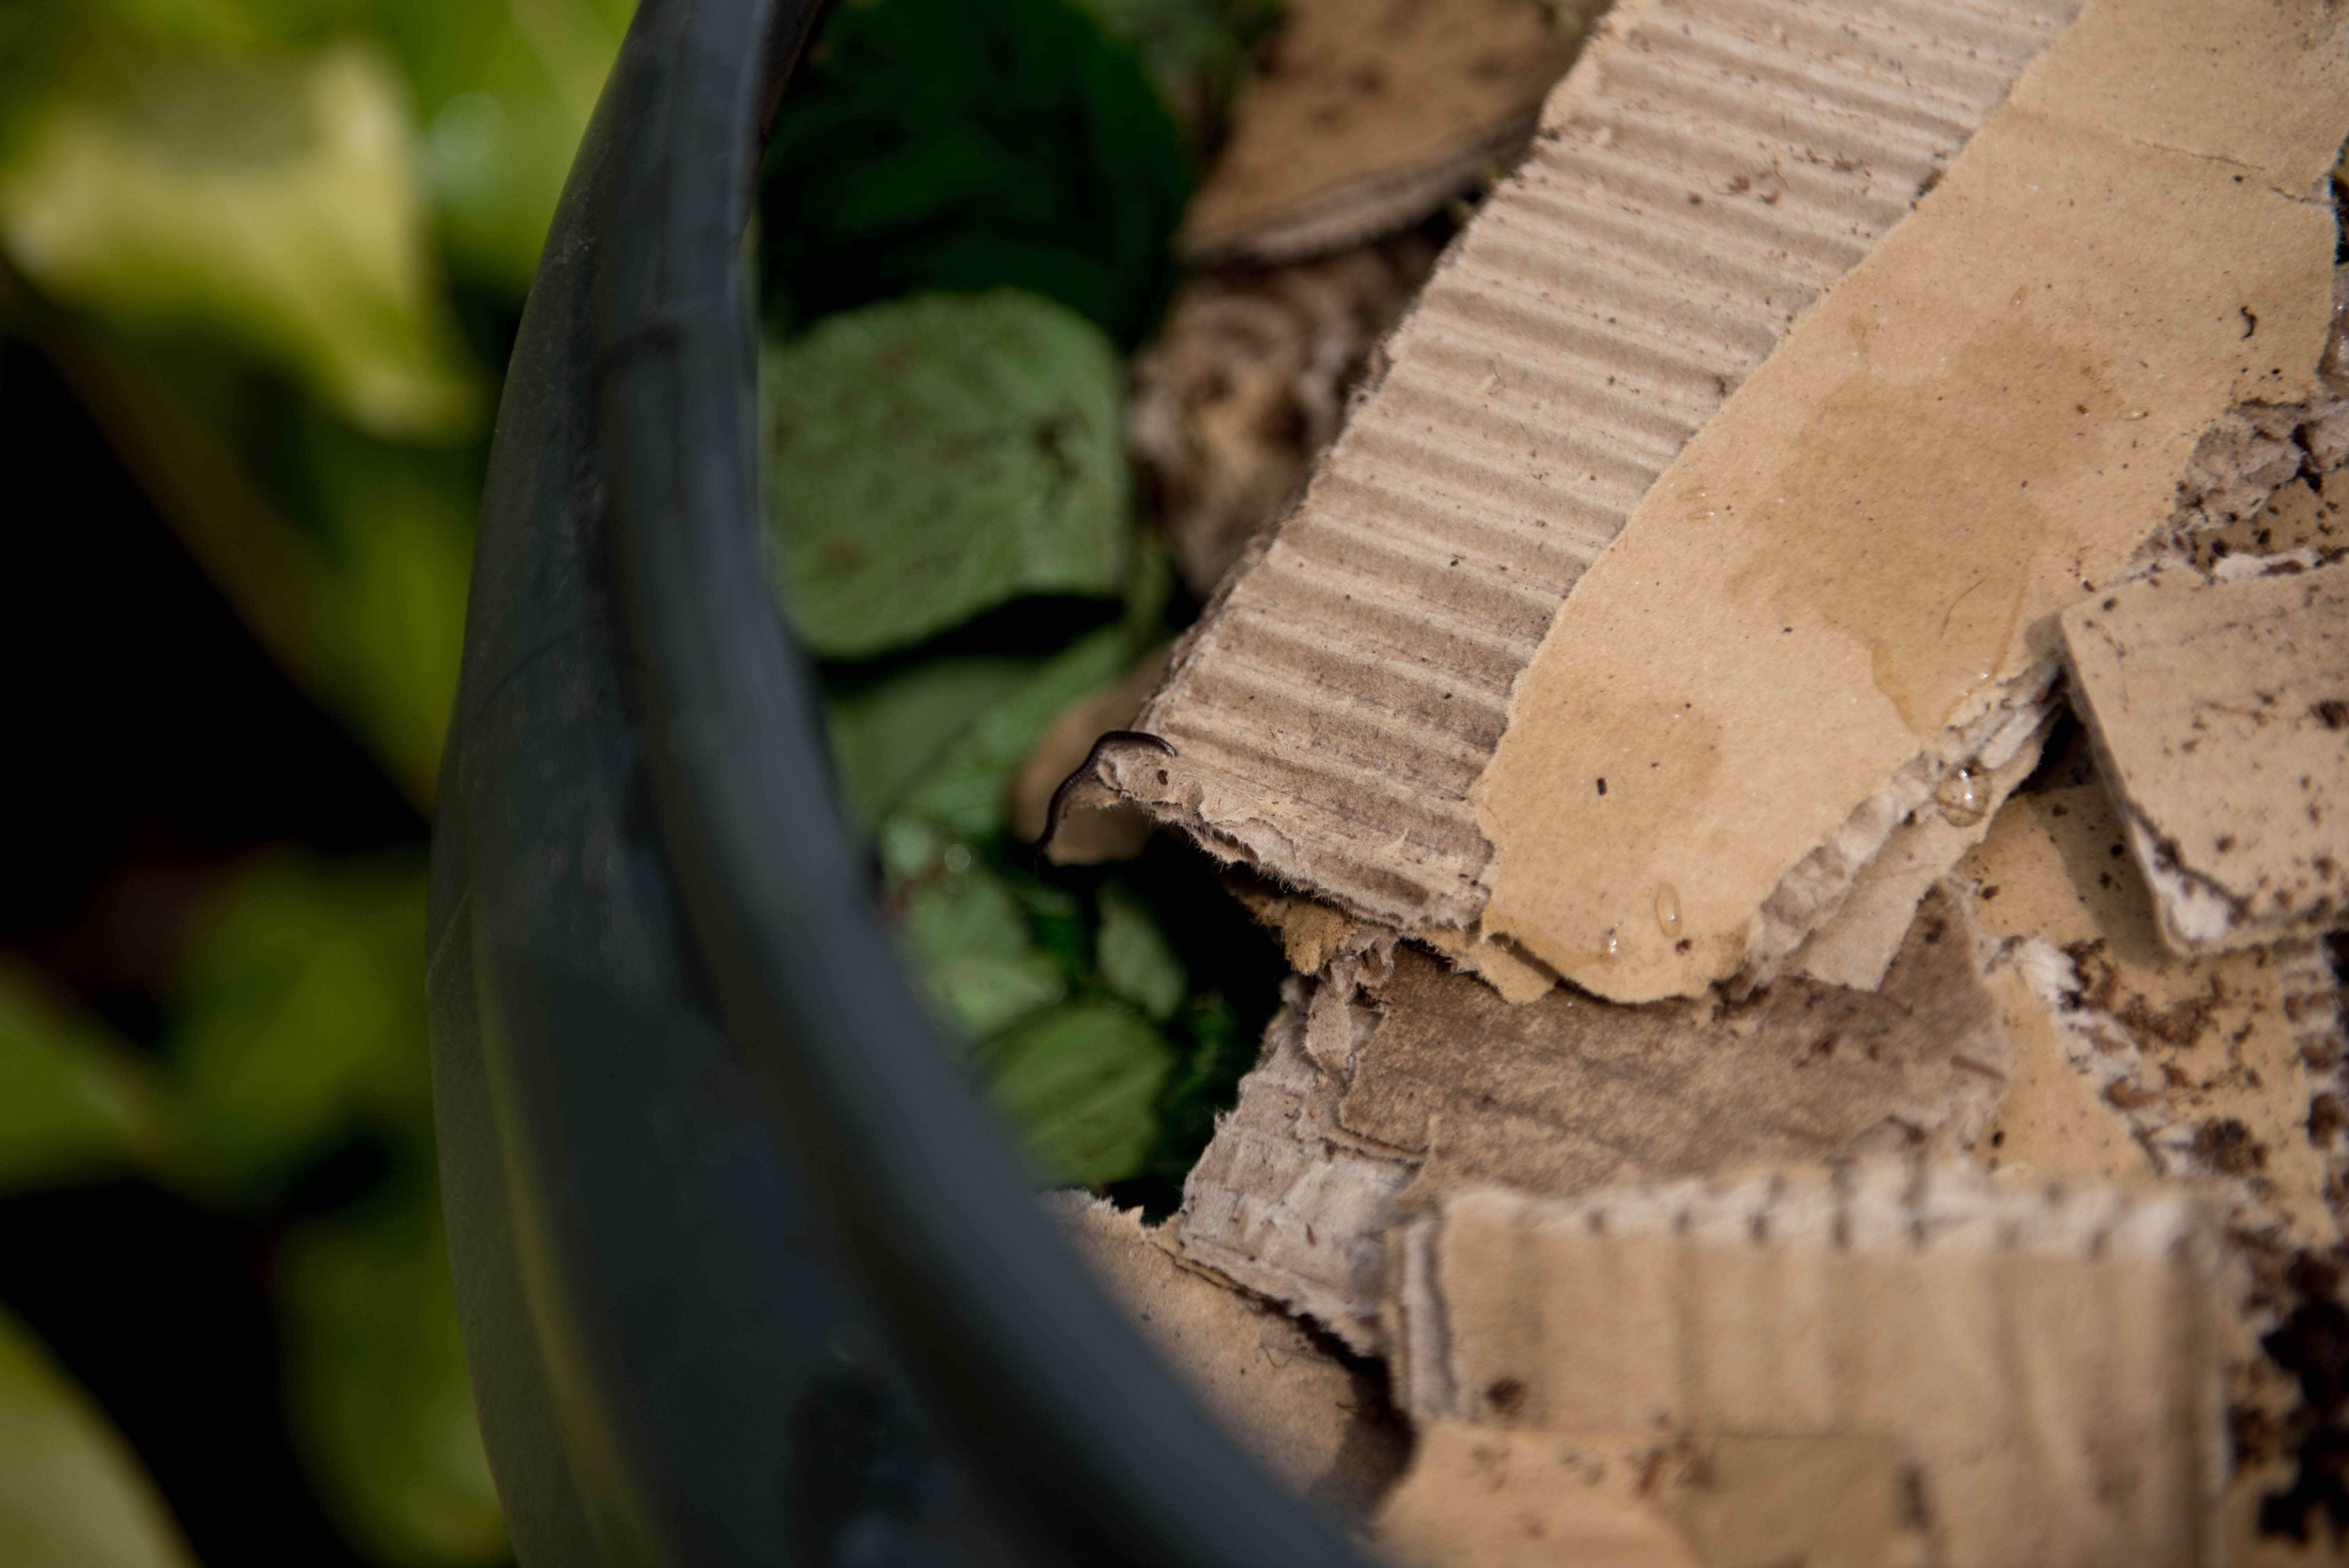 Adding brown, carbon, cardboard to your compost bin for zero-waste gardening